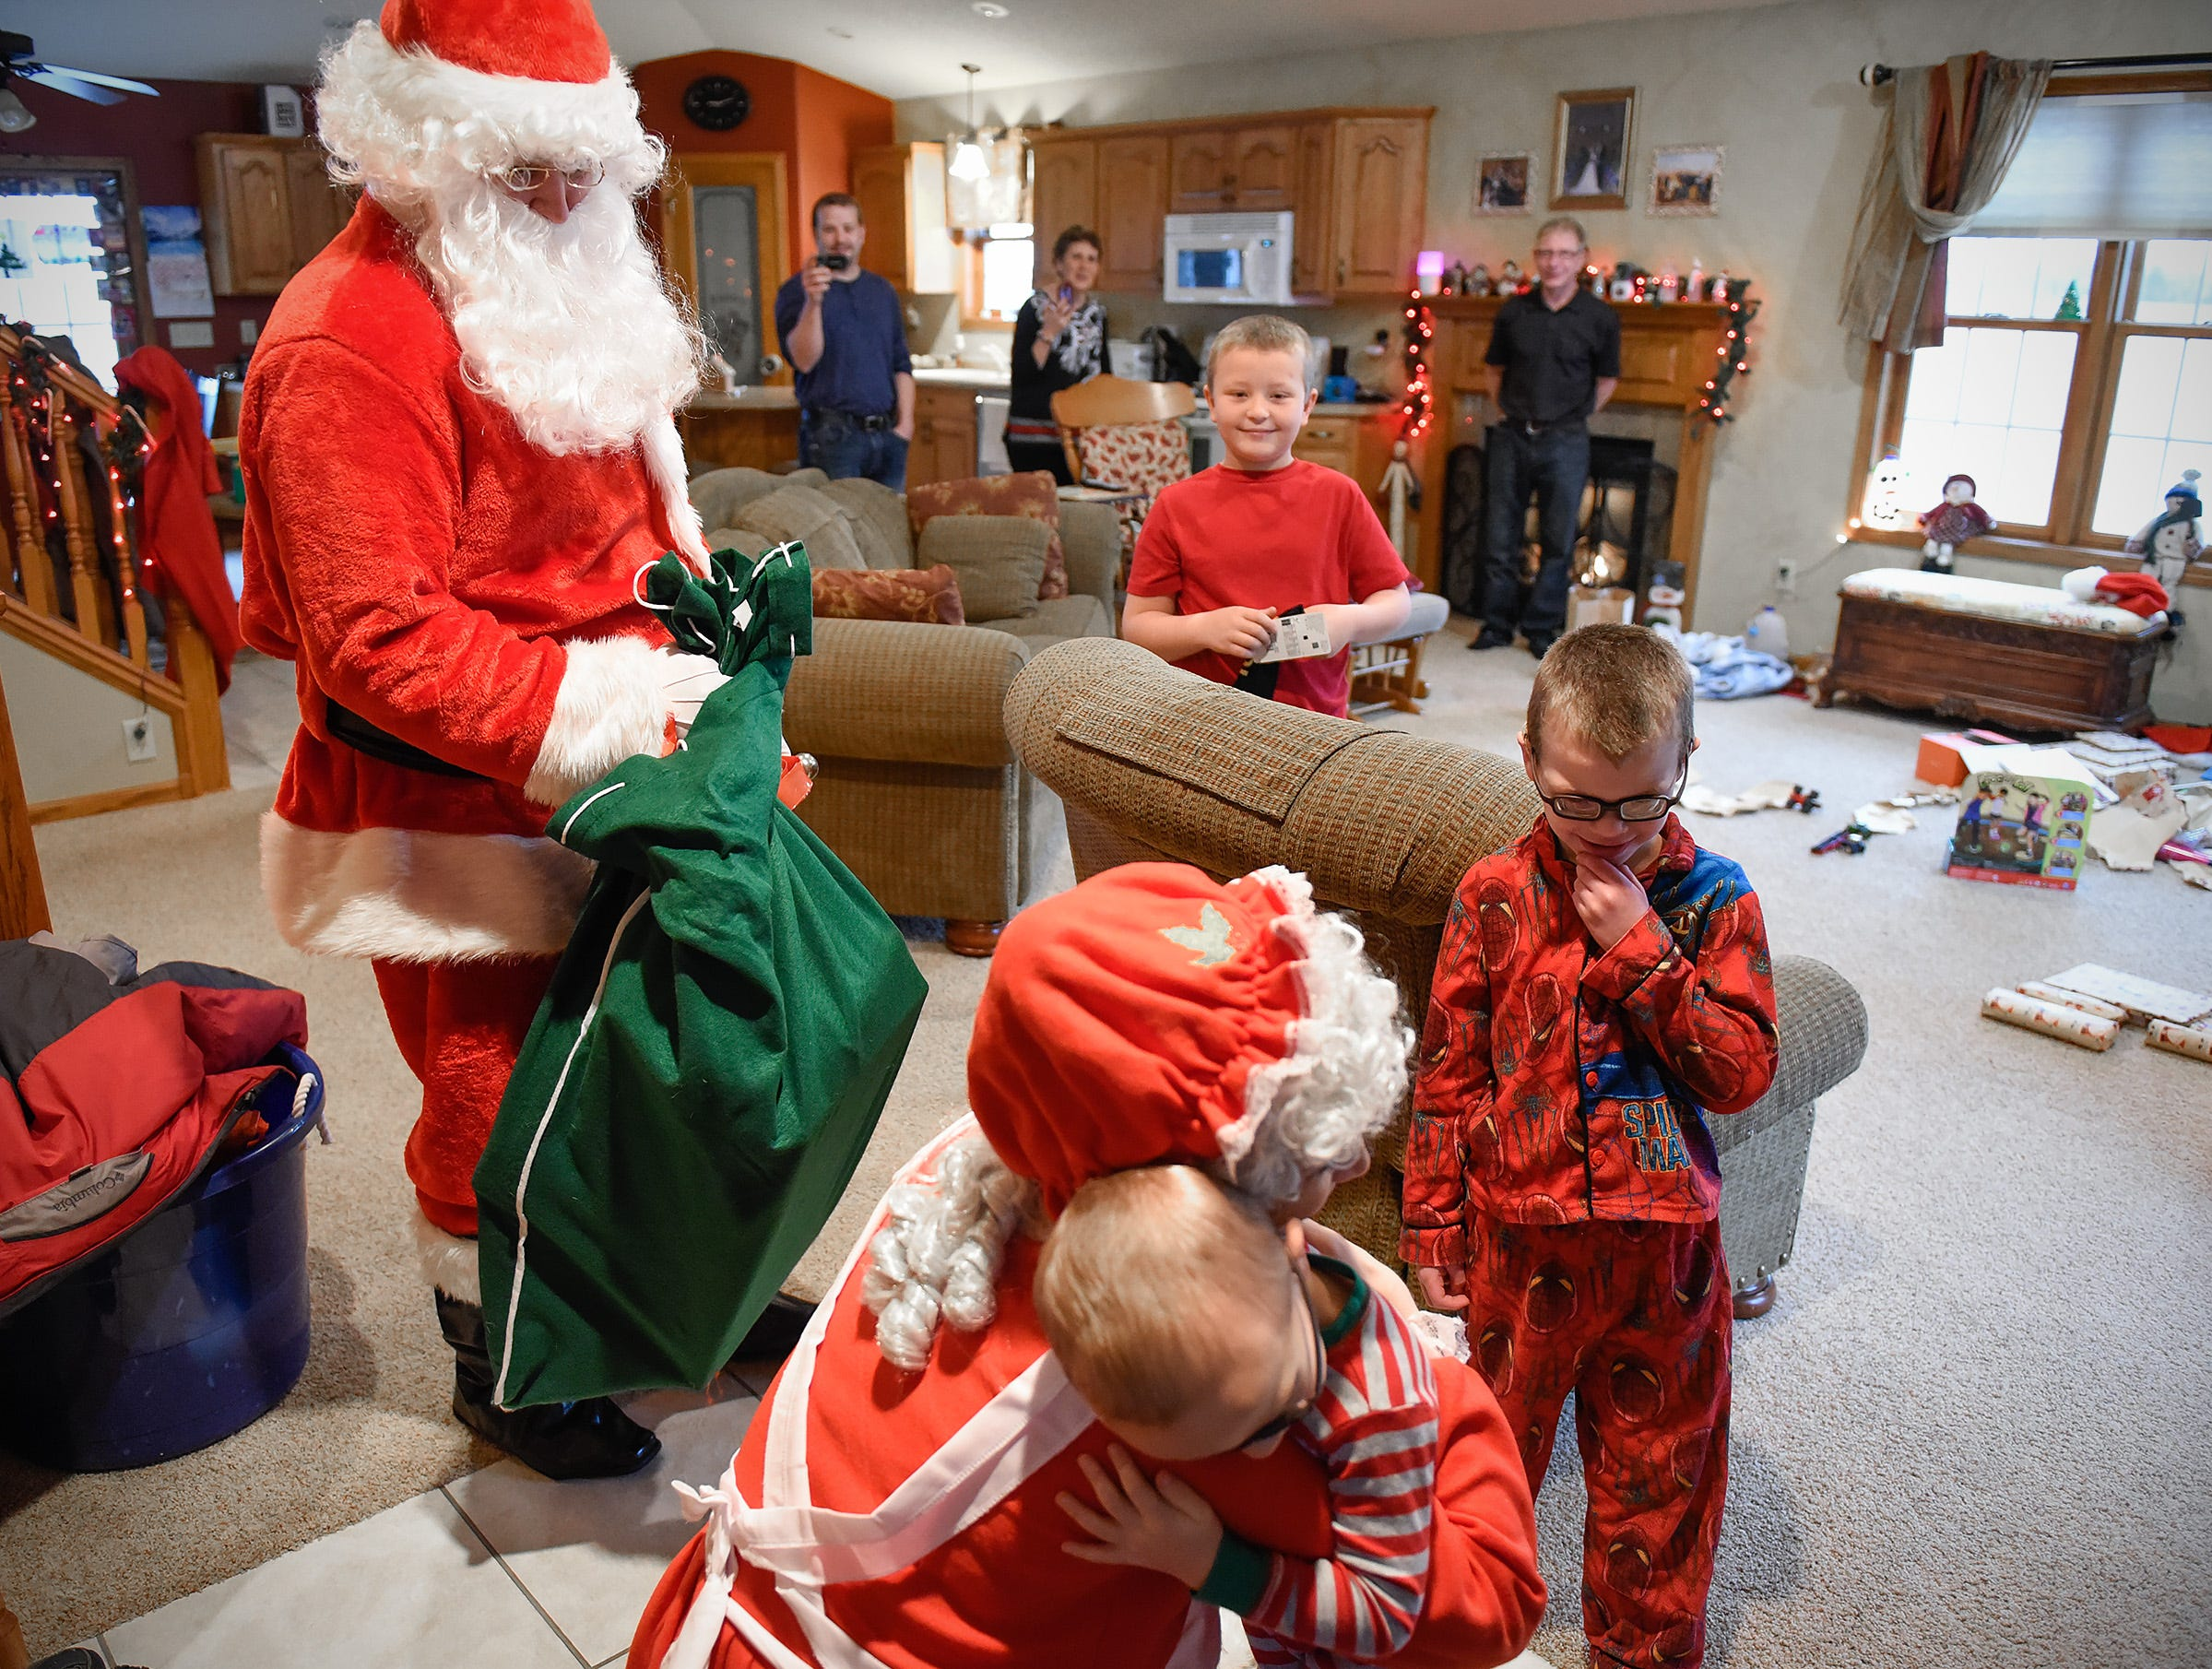 Santa and Mrs. Claus get hugs from Brockdan Schneider, 3, Landan, 8, center, and Camran, 6, during a special stop Tuesday, Dec. 25, in Kimball.